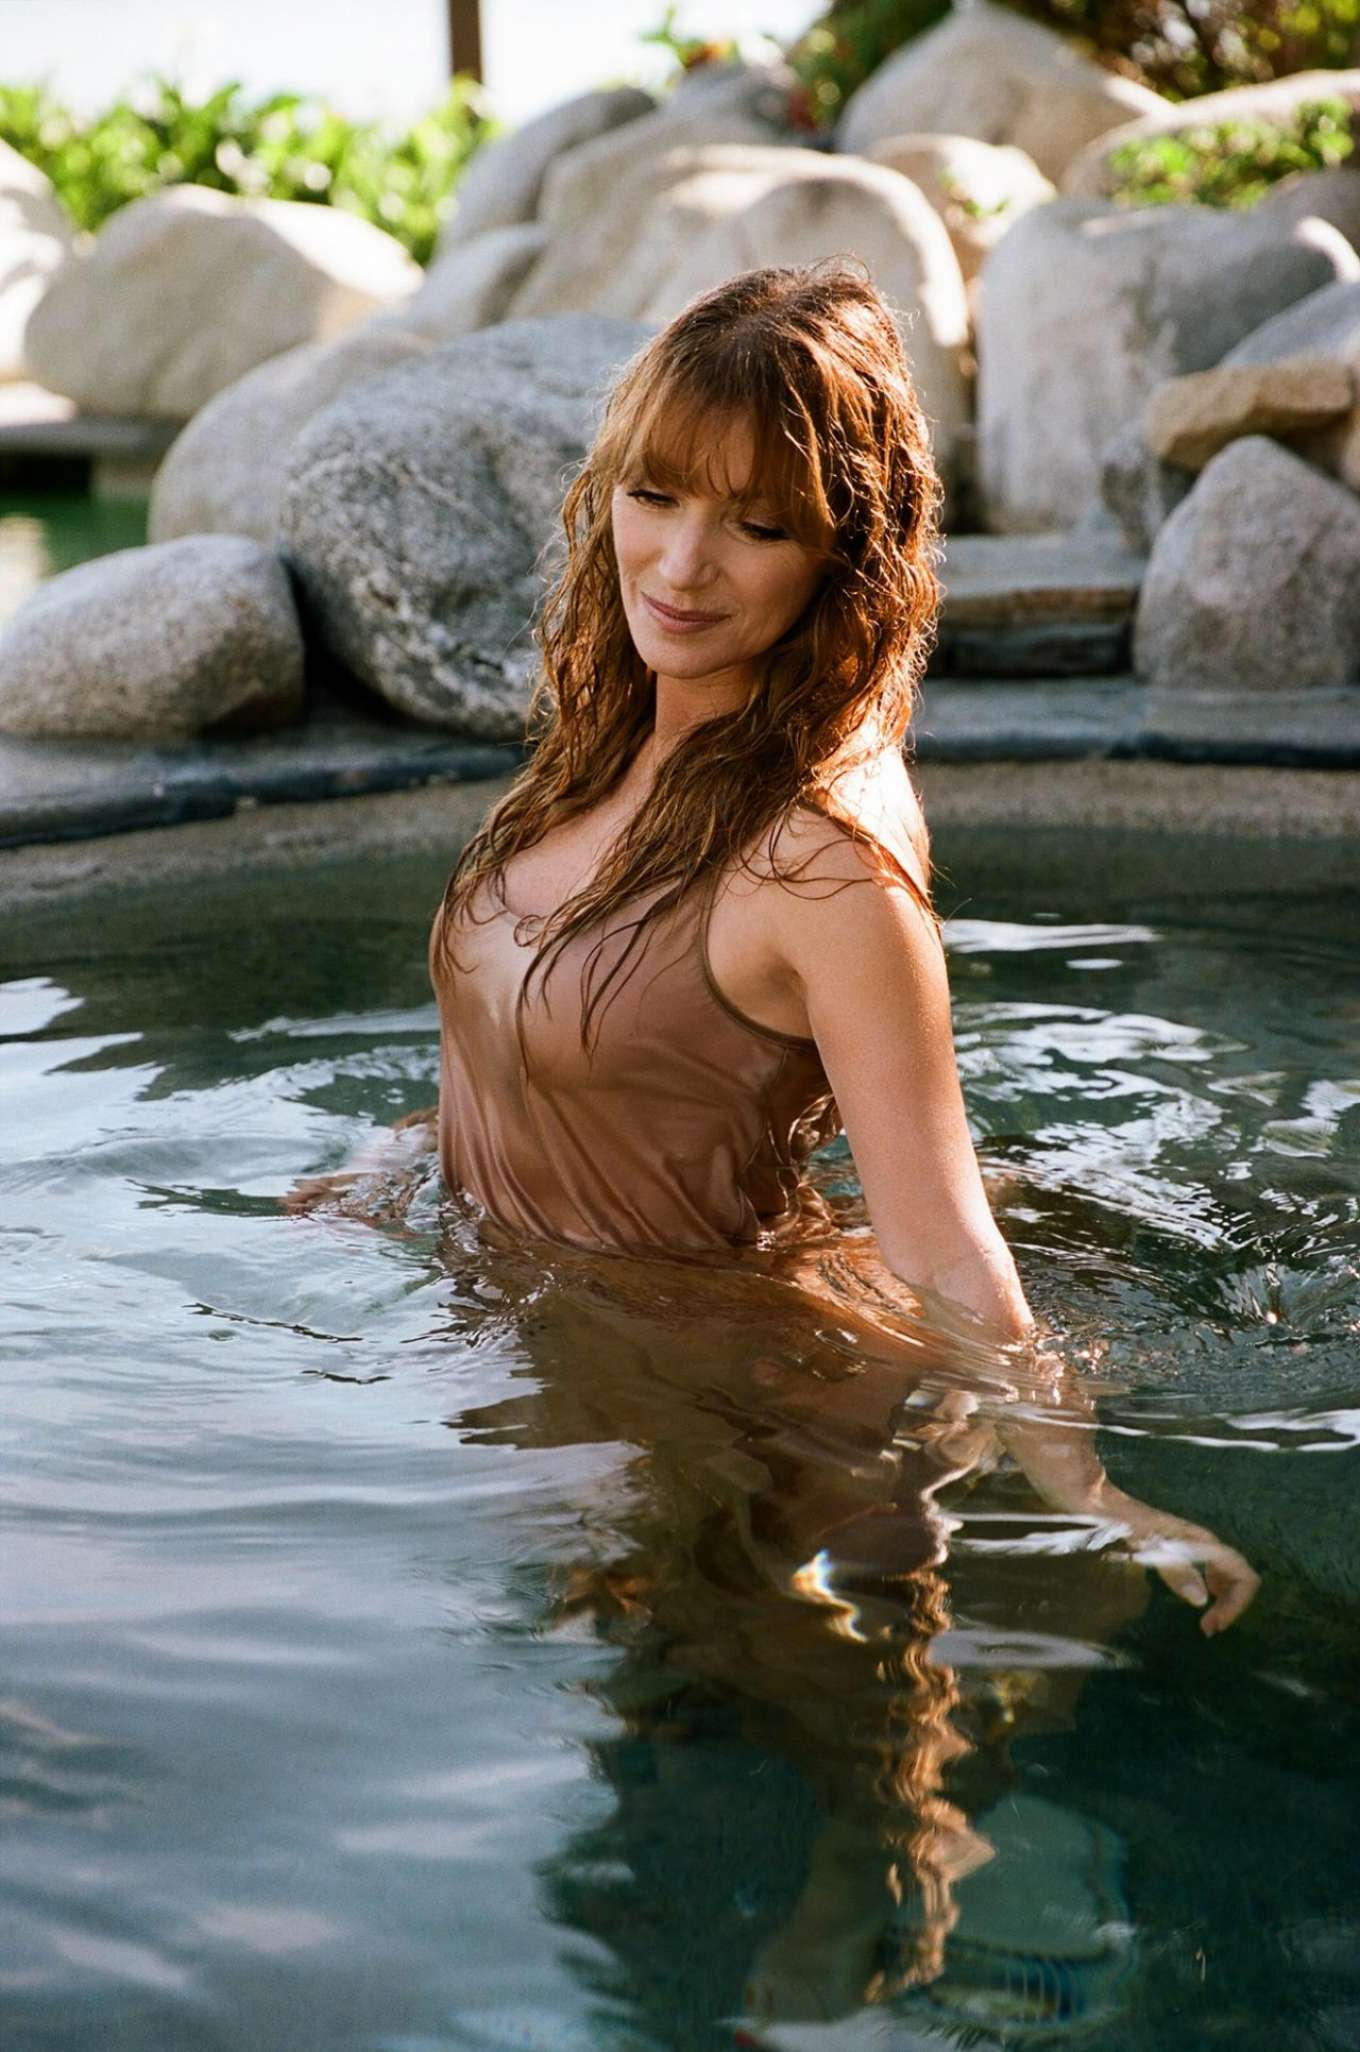 Jane seymour playboy - 2019 year